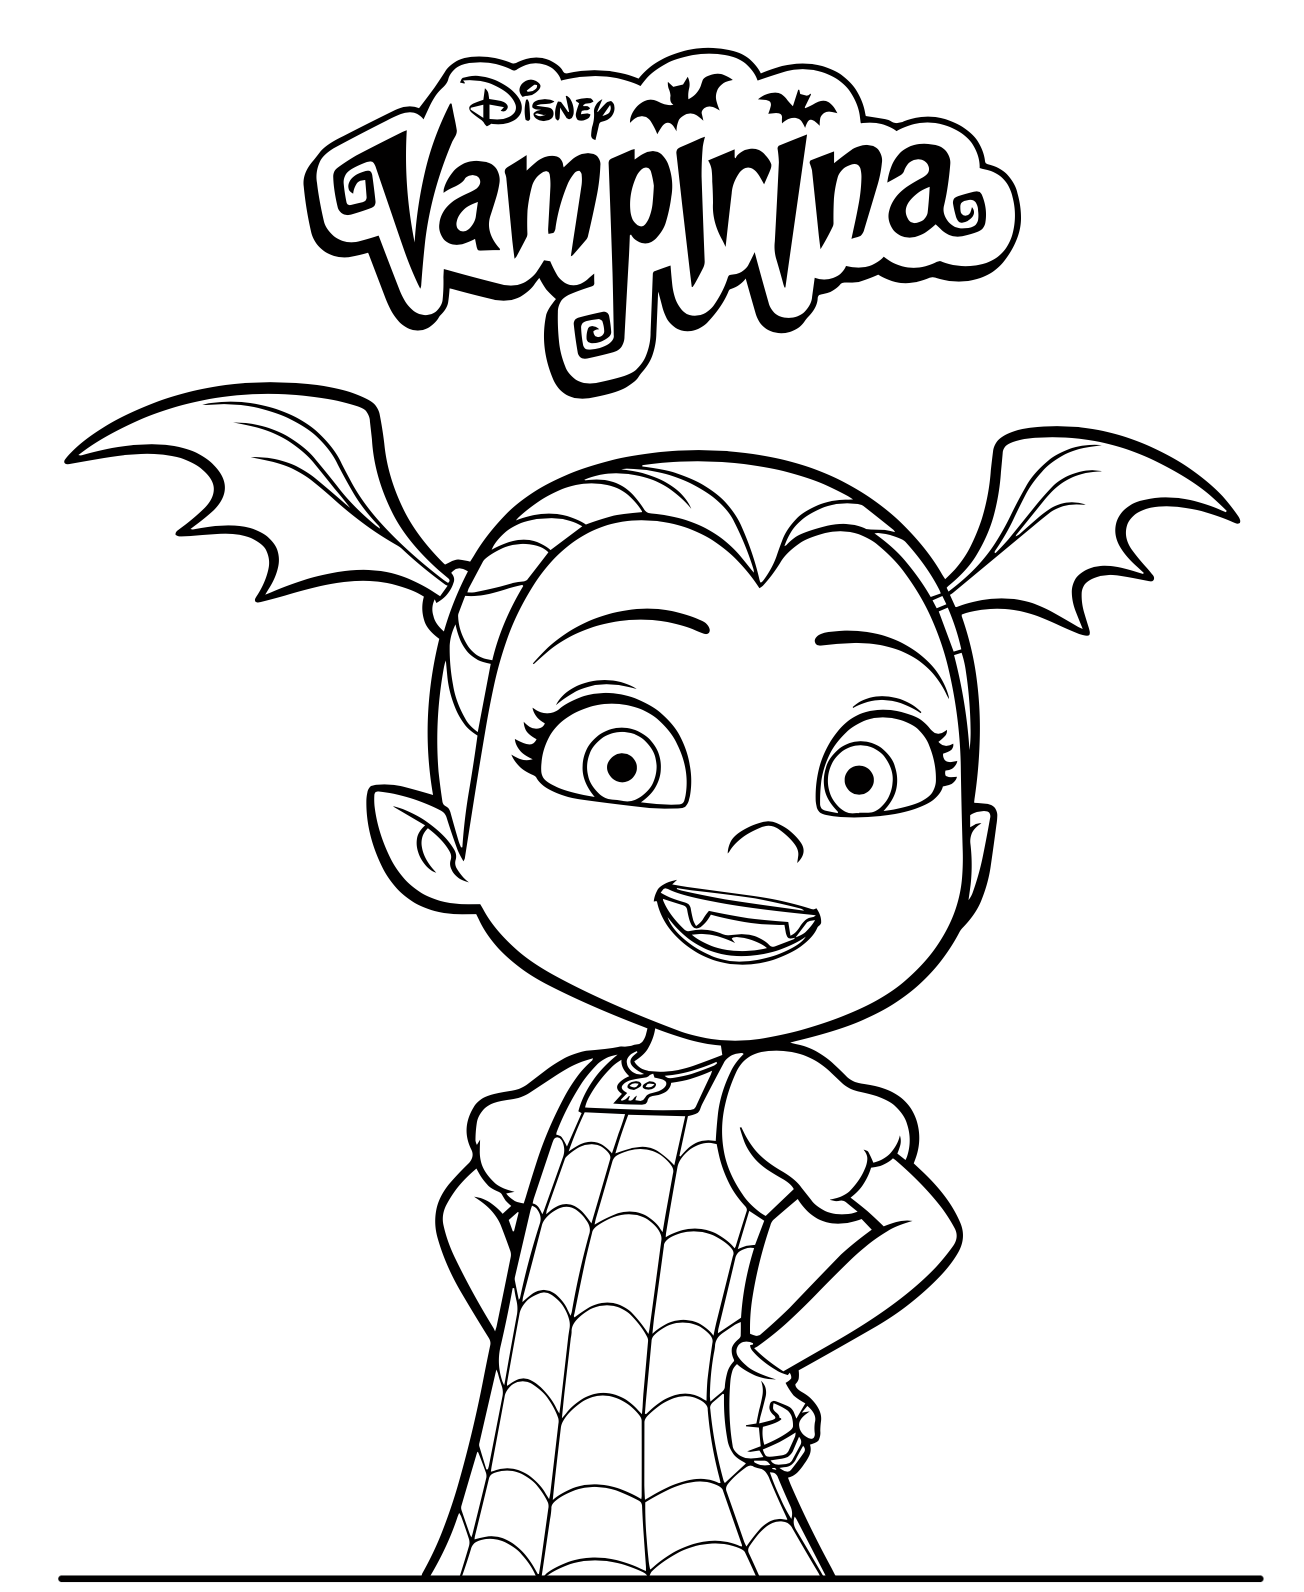 Disneys Vampirina Coloring Pages